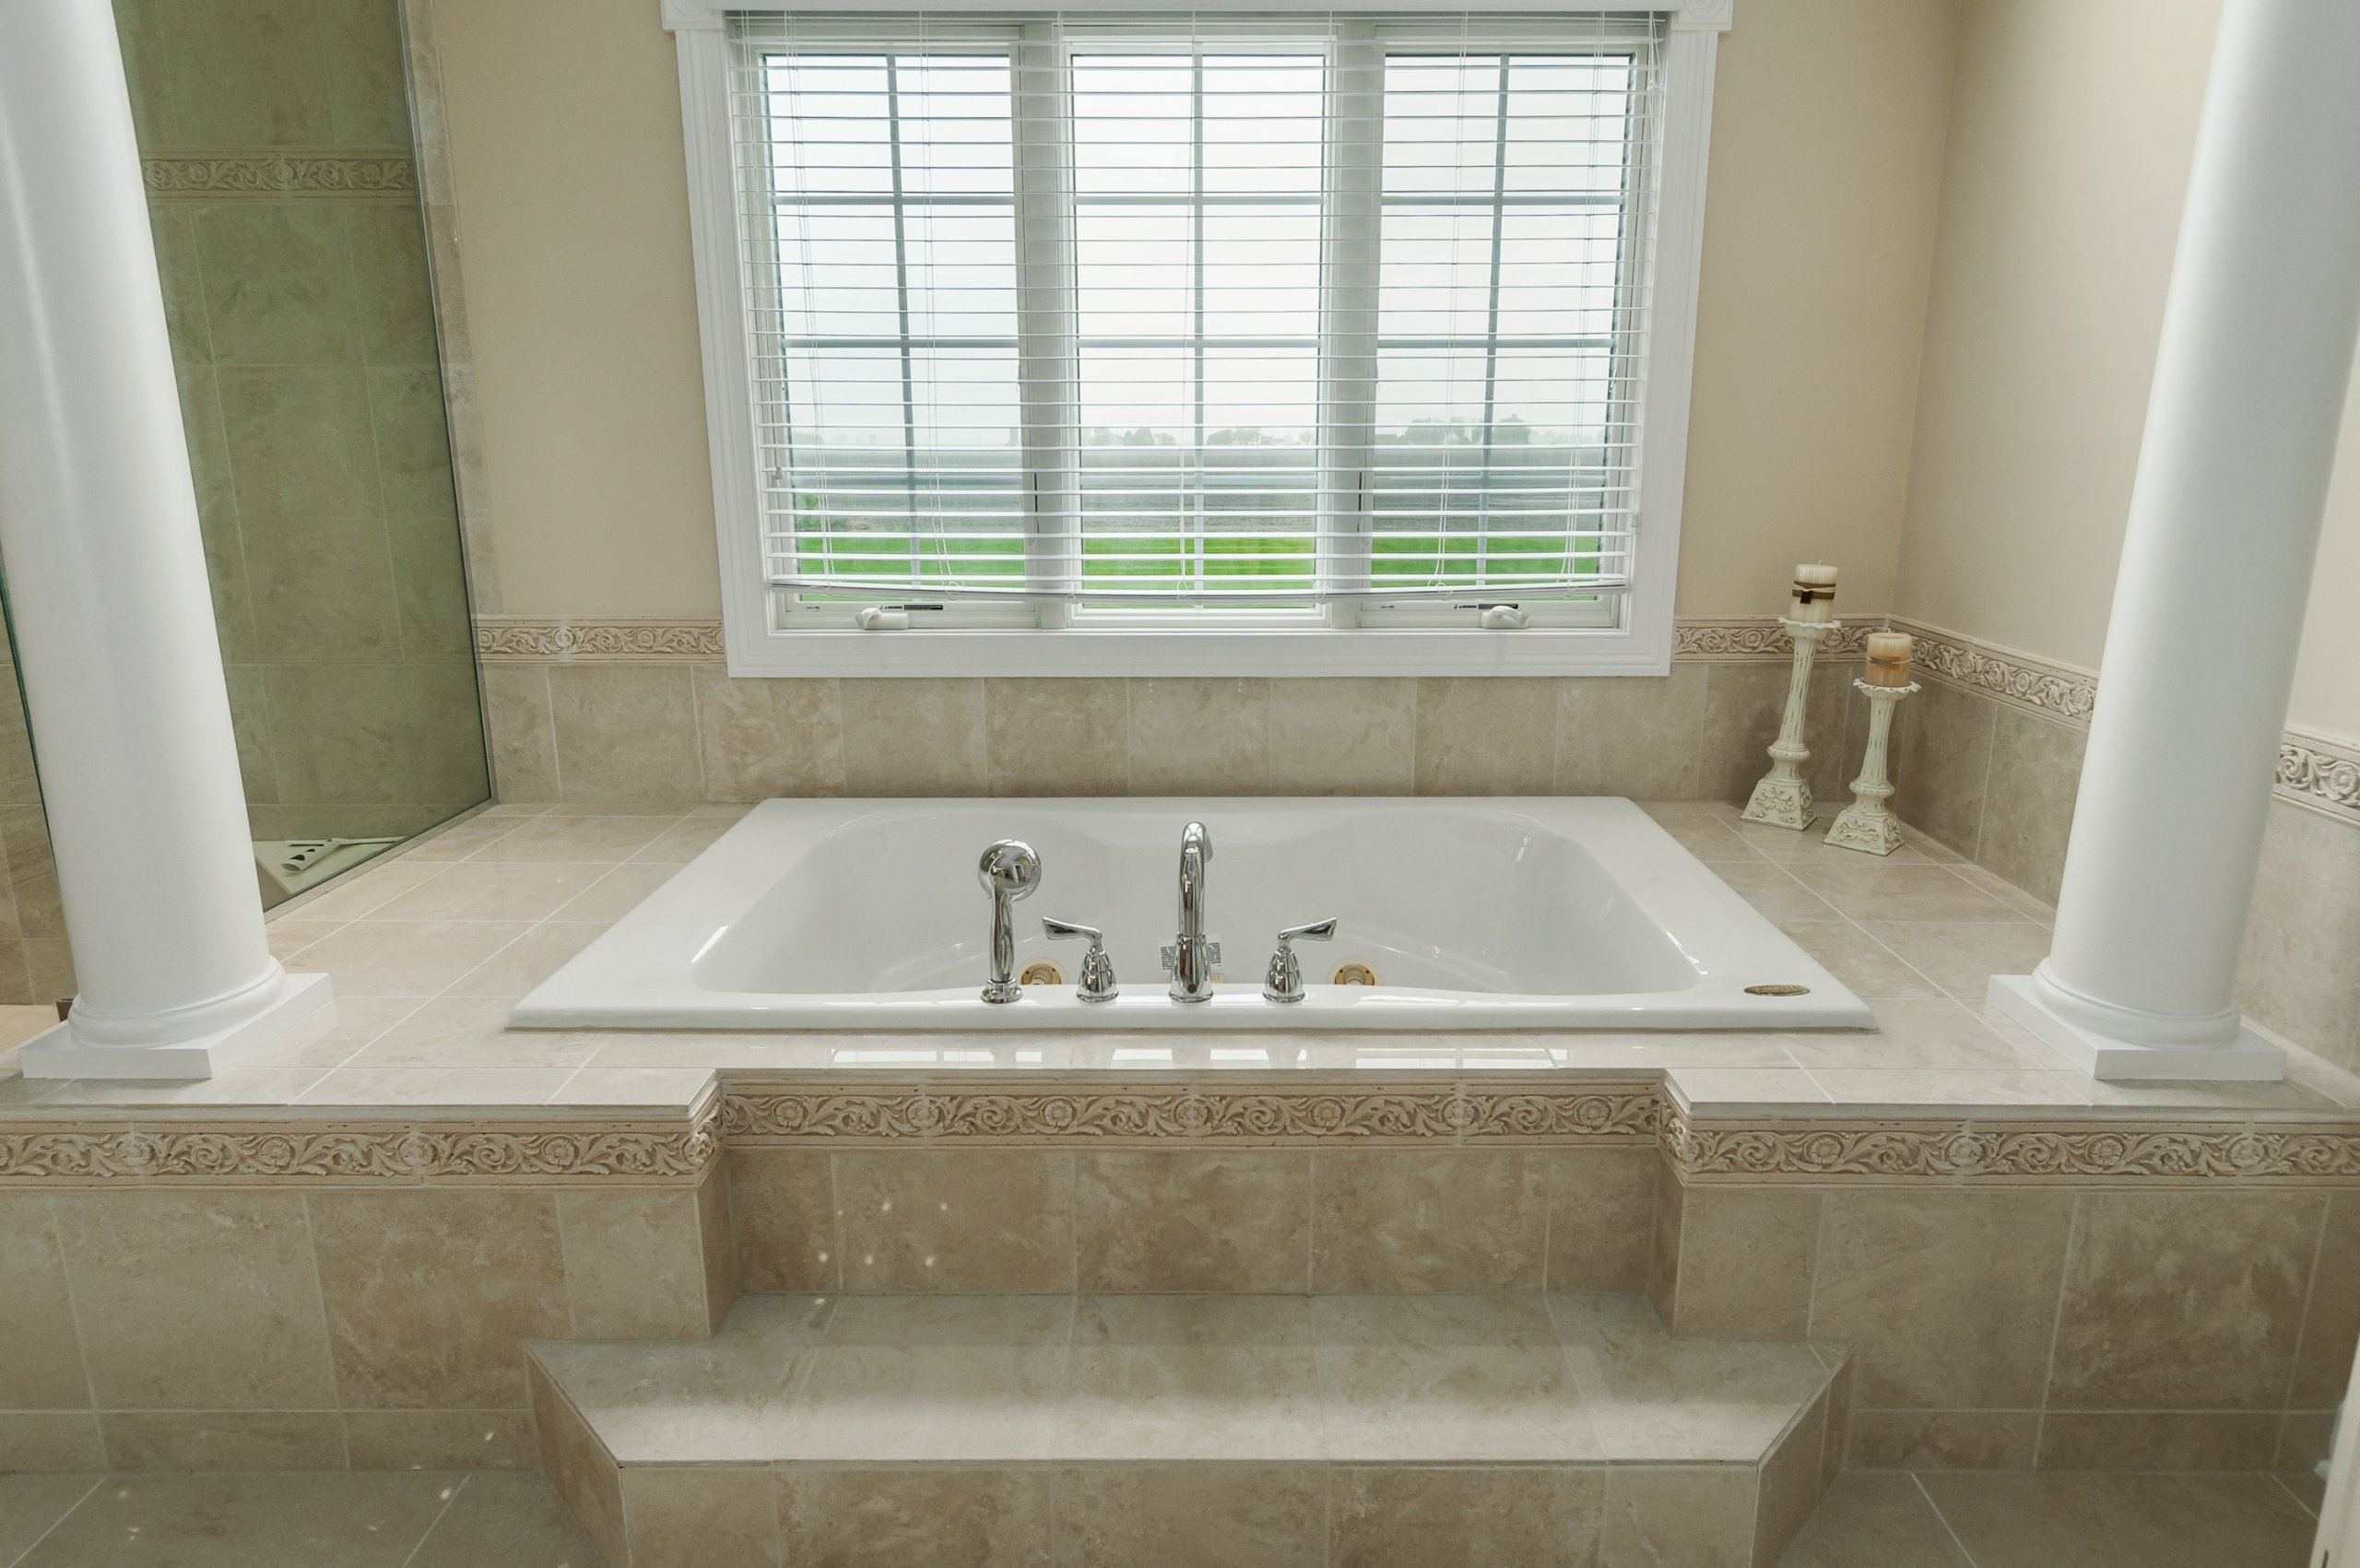 Marbled high end bathroom with columns in Somonauk, Illinois estate home.